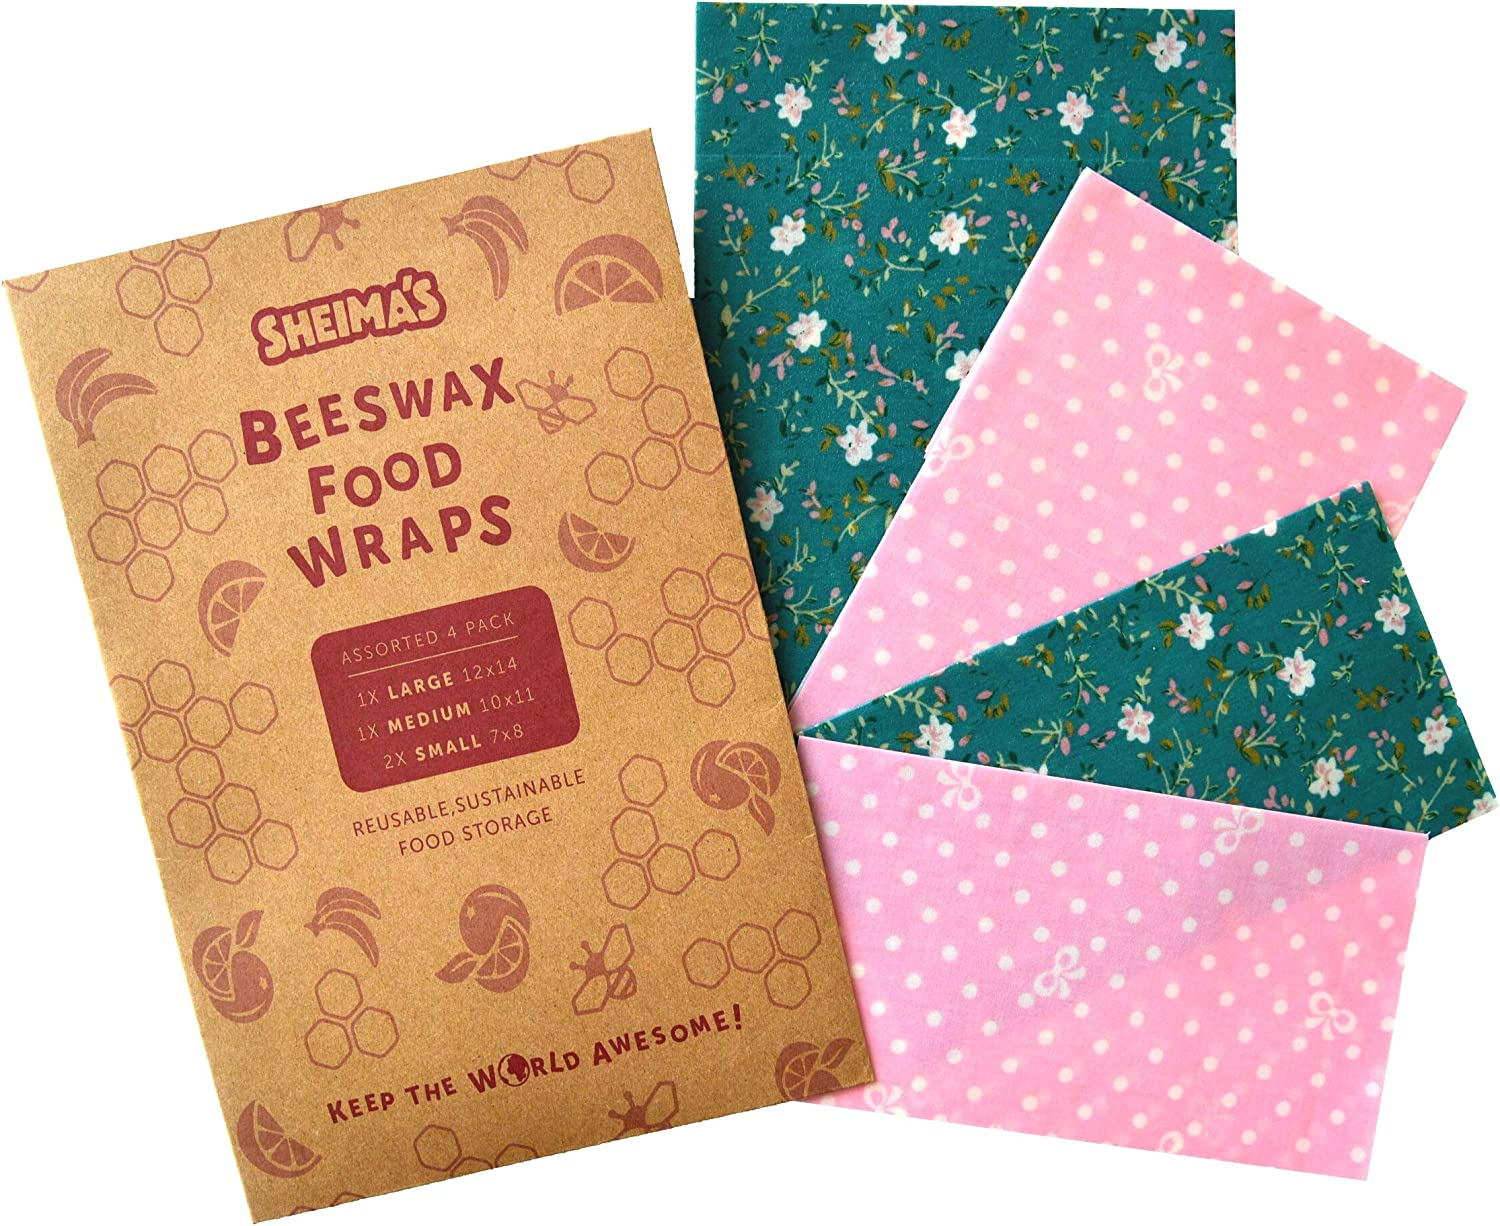 Beeswax Food Wraps Assorted 4 Pack - Organic&Natural, Reusable, Sustainable, Plastic Free Food Storage- Eco Friendly Wraps by Sheima's- 2 Small, 1 Medium, 1 Large